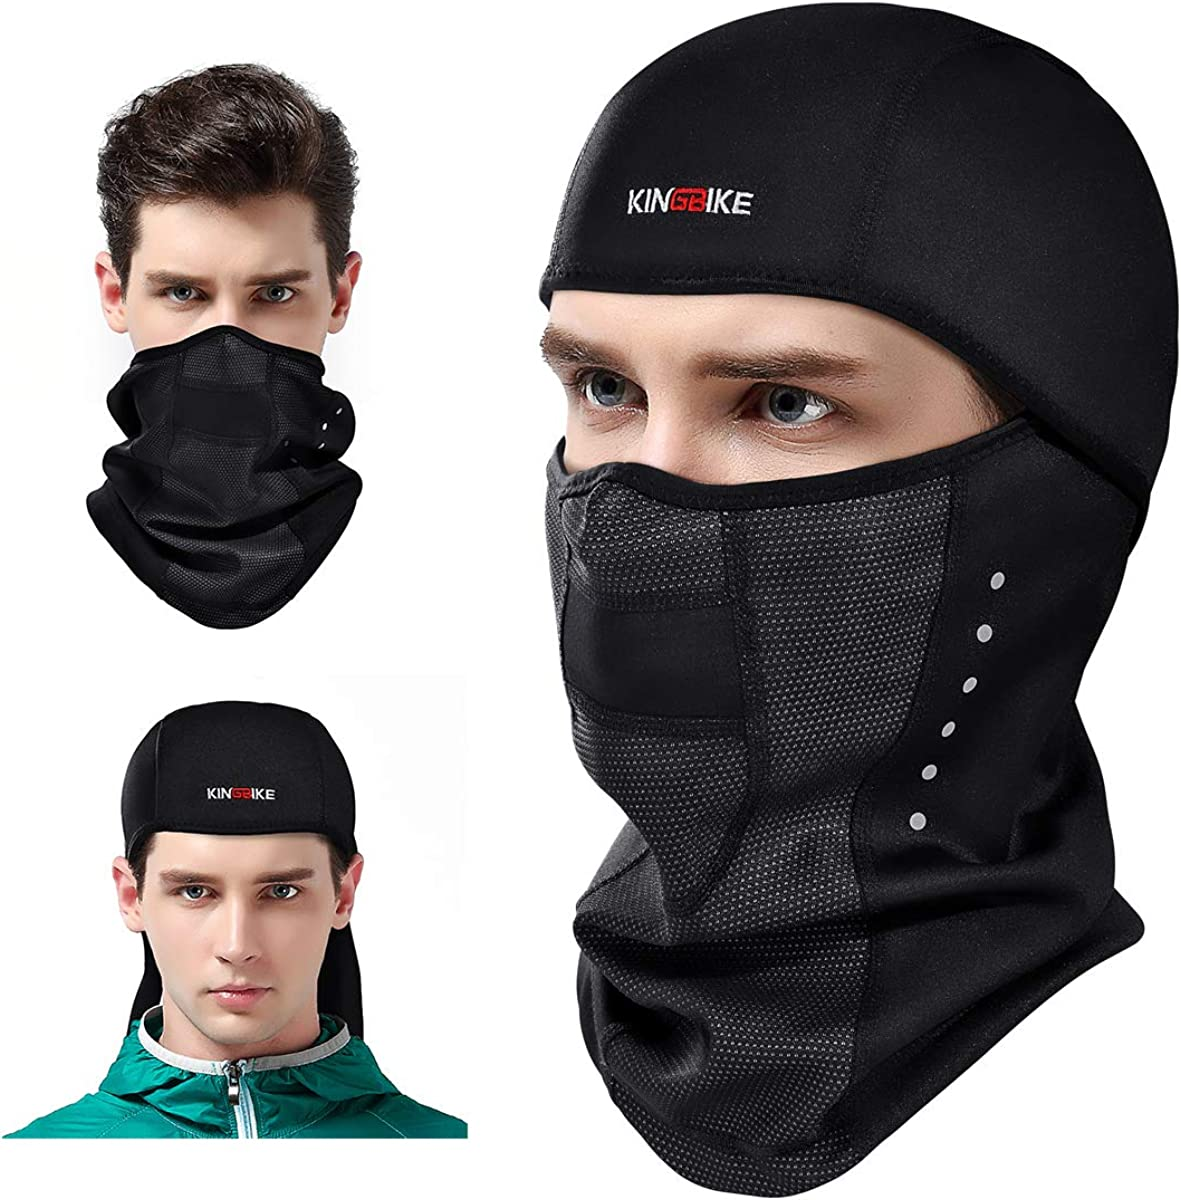 Wind-Resistant Face Mask/& Neck Gaiter,Balaclava Ski Masks,Breathable Tactical Hood,Windproof Face Warmer for Running,Motorcycling,Hiking-Allo